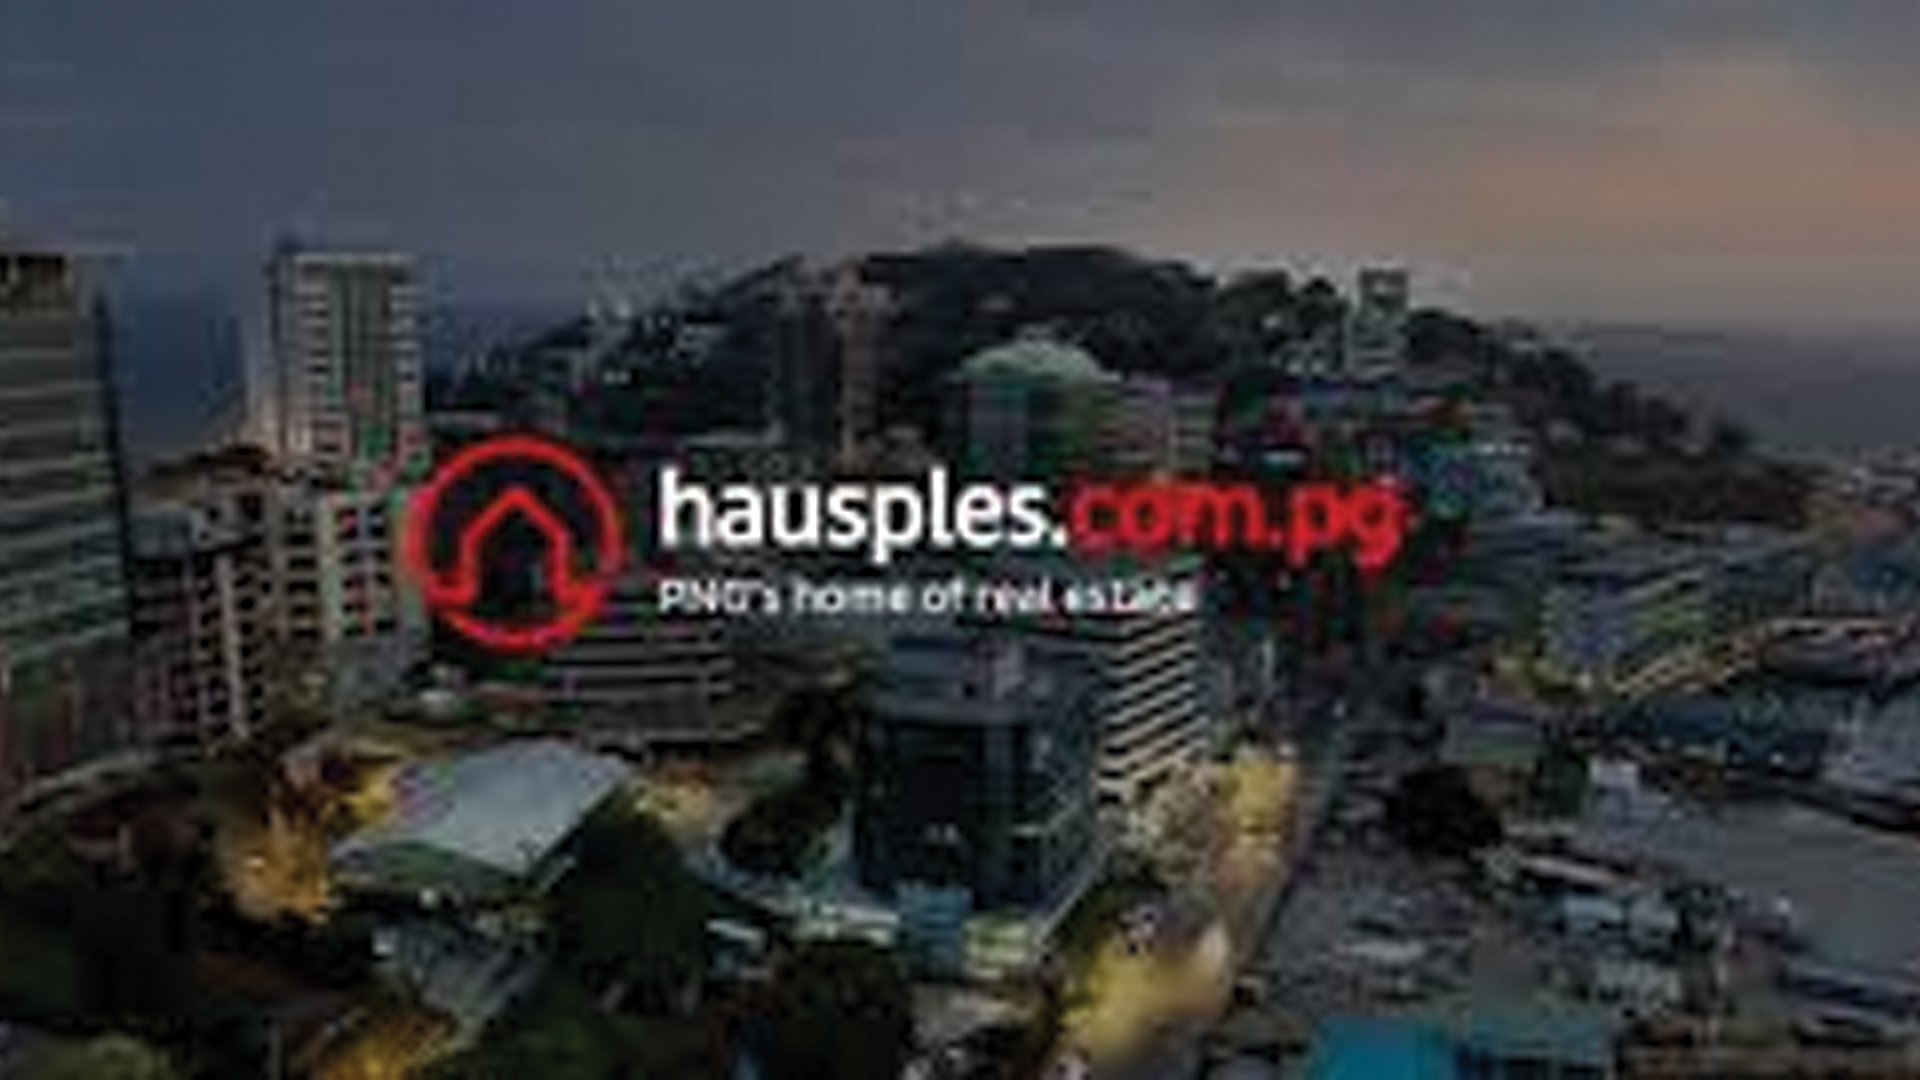 Haus Ples updates real estate online search.